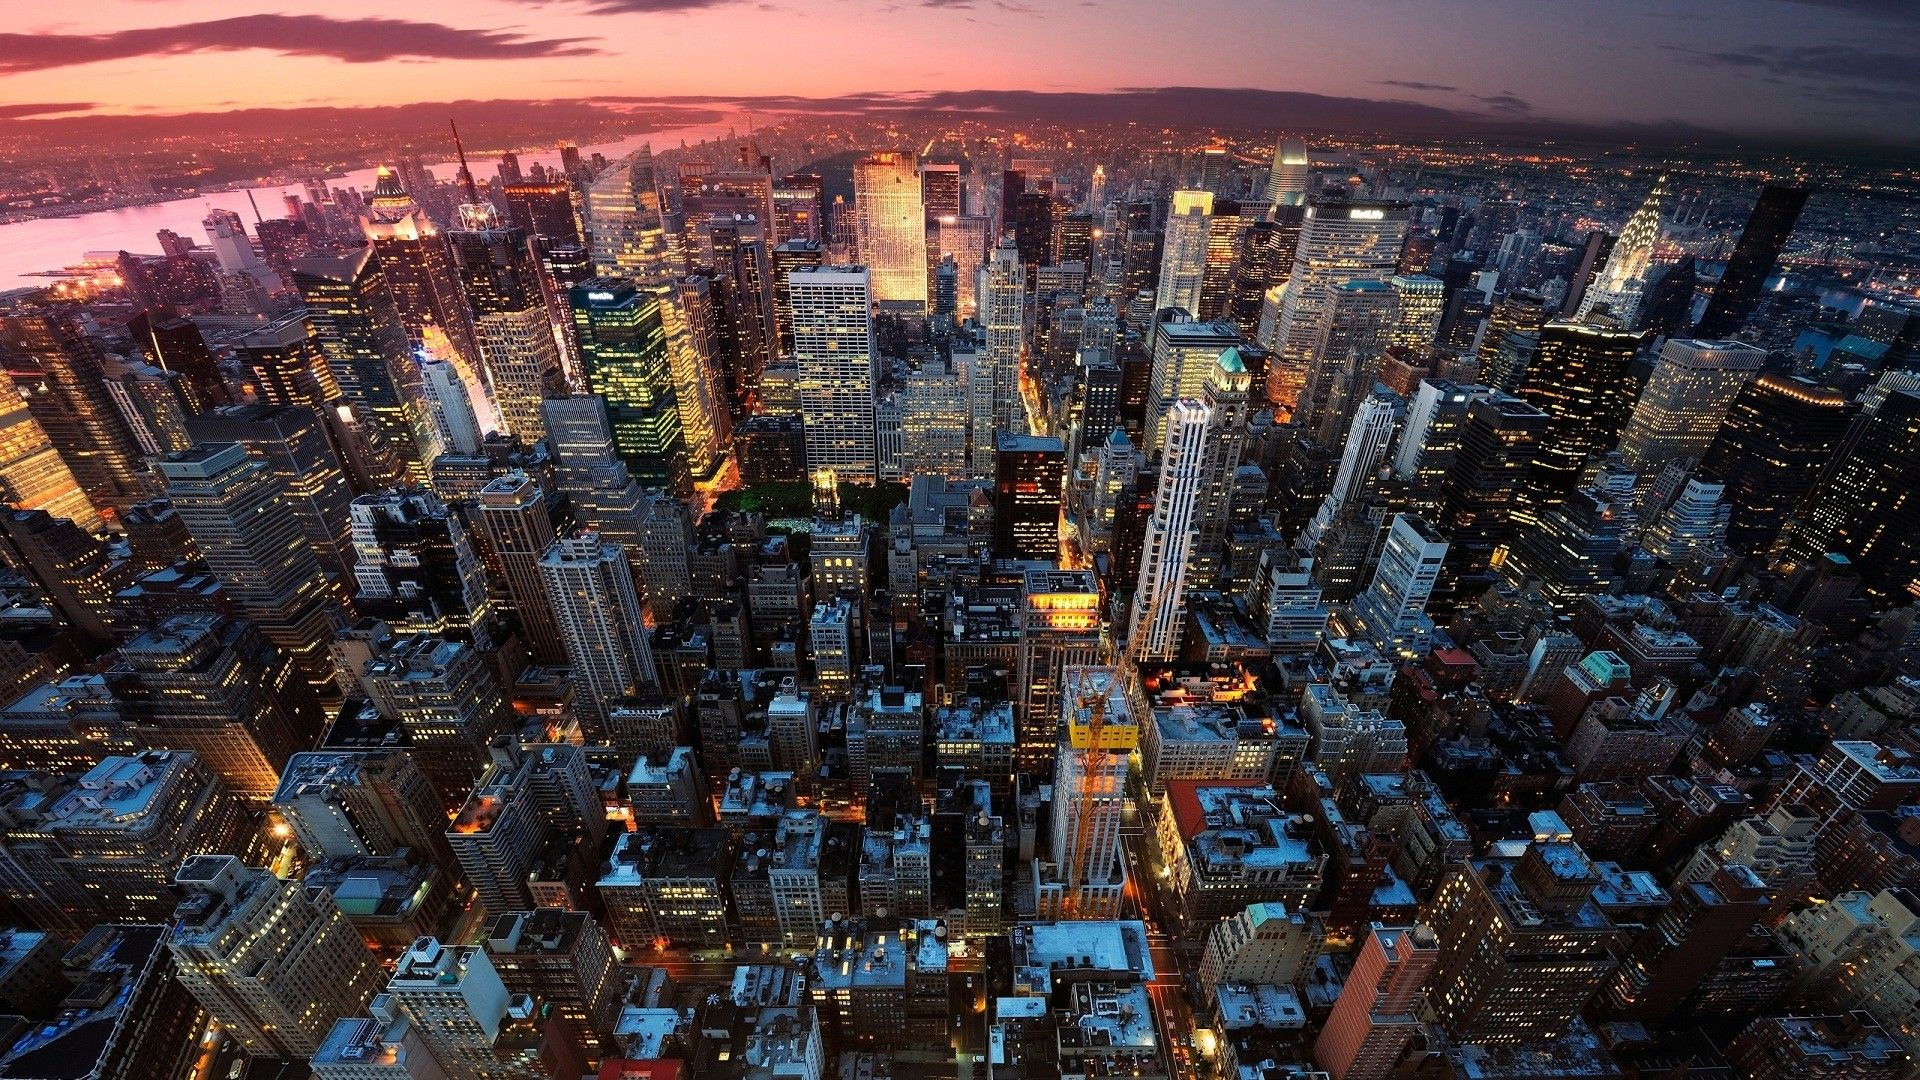 Nyc Skyline hd wallpaper download